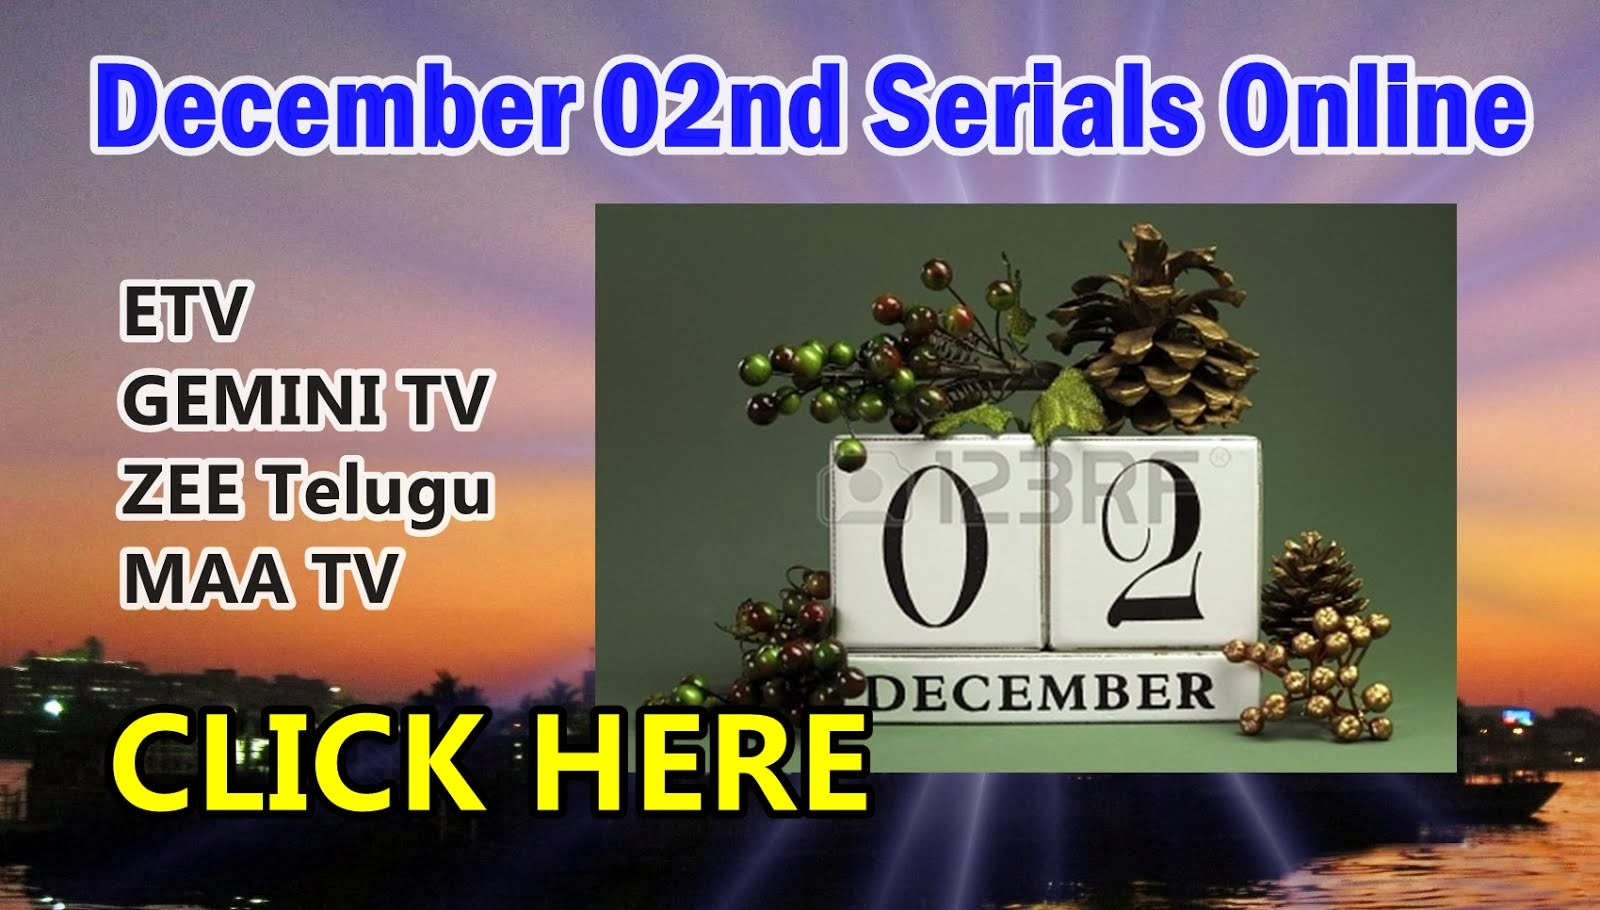 December 02 Monday Telugu Daily Serial Online - CLICK HERE